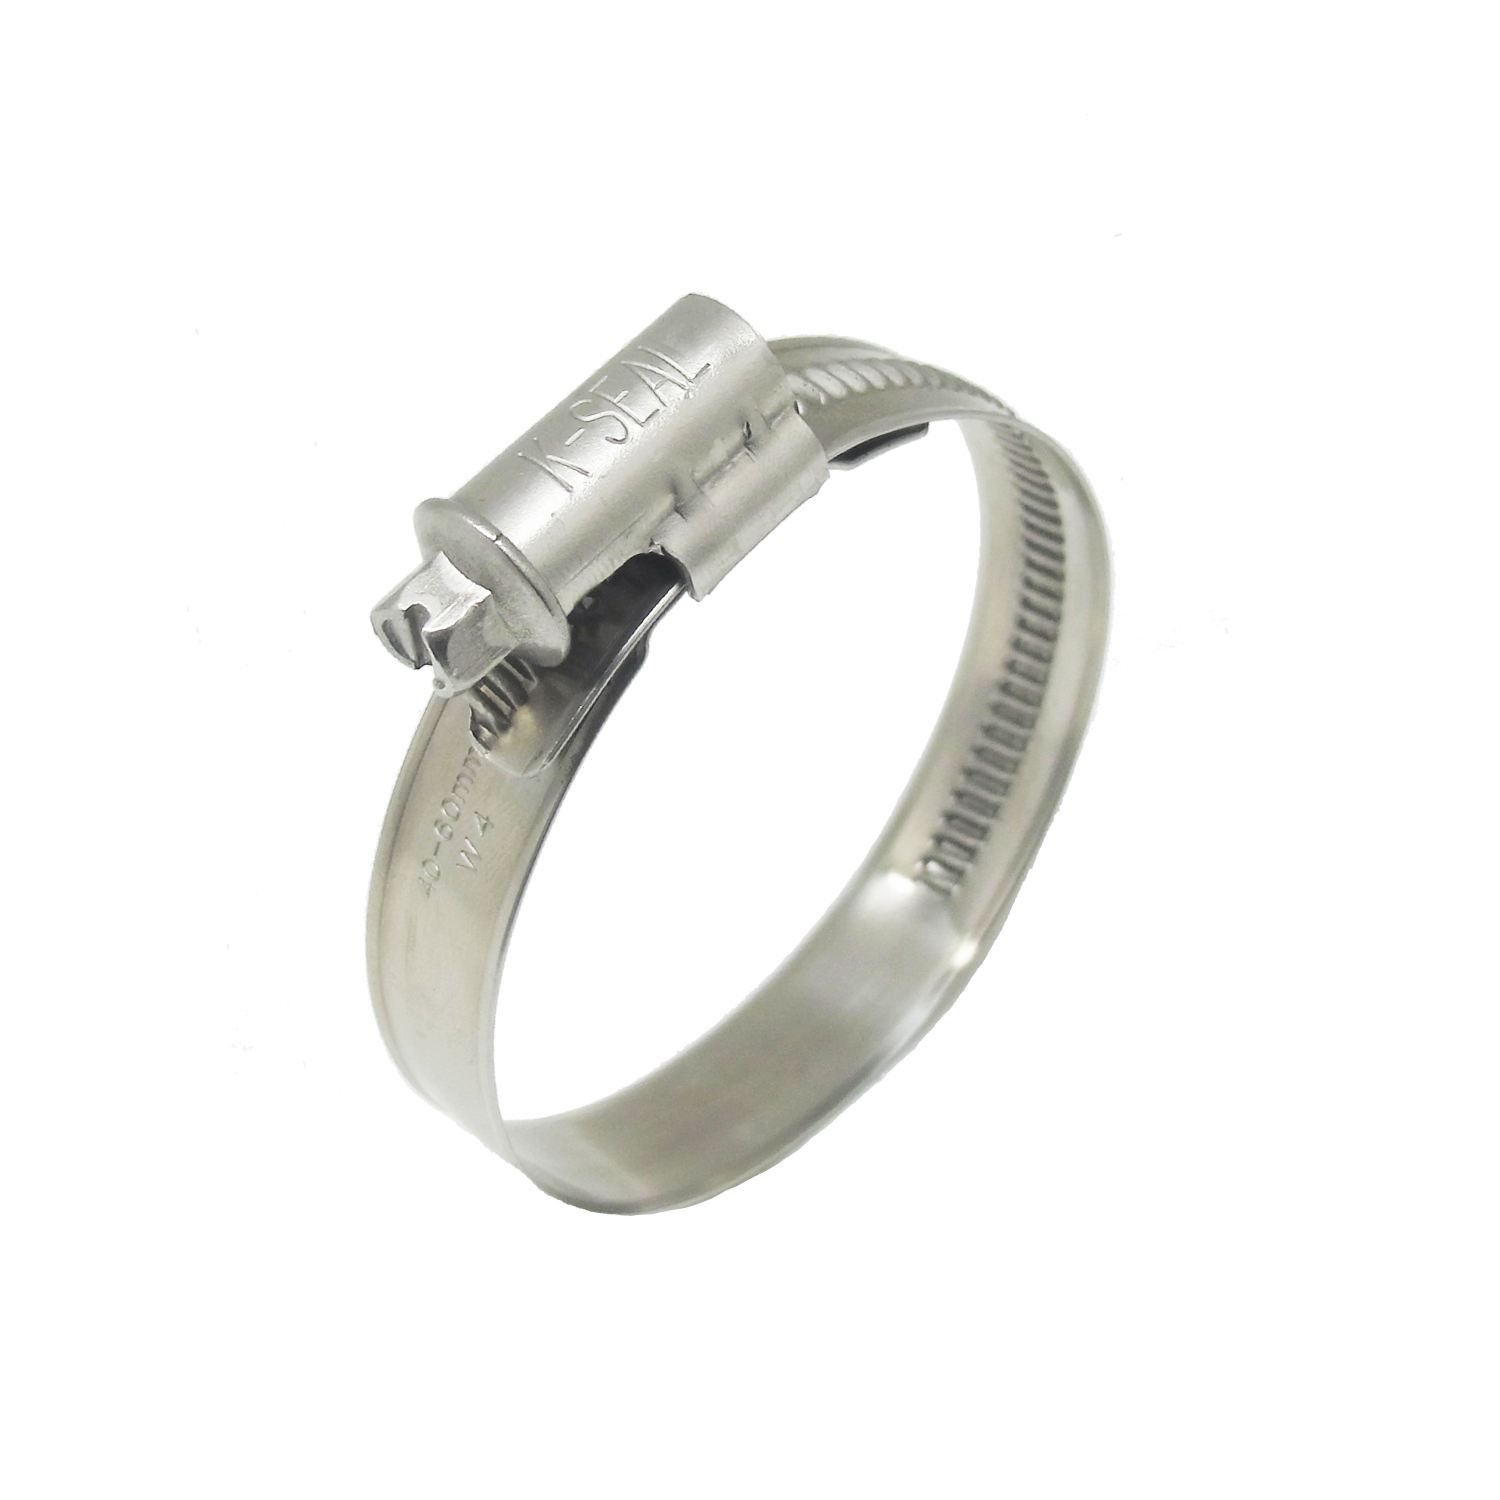 Mechanical Germany Type Hose Clamp